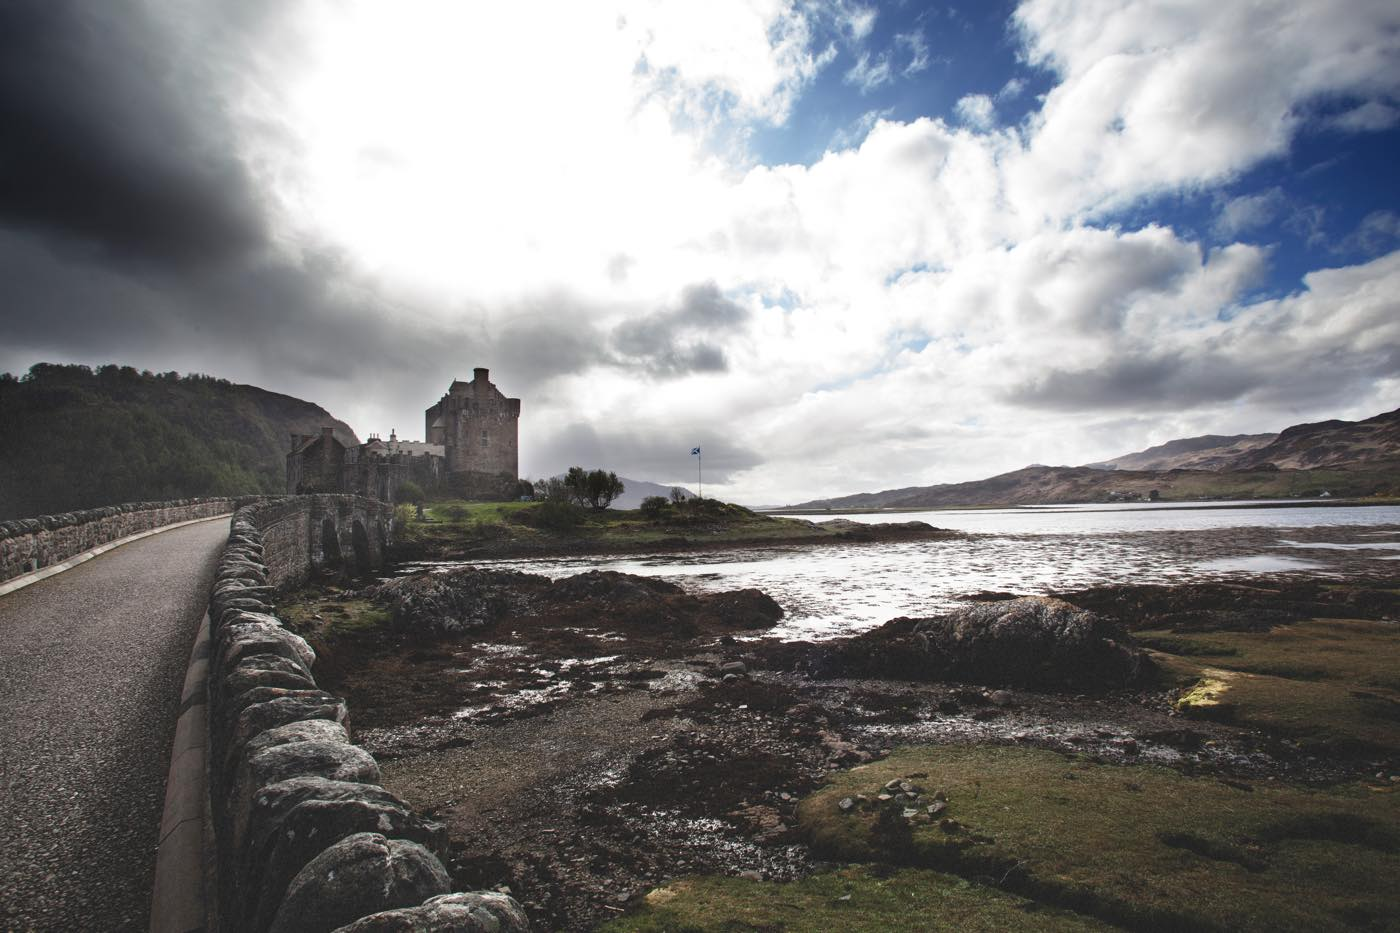 my-wanderlust-notes-5-giorni-in-scozia-on-the-road-eilan-donan-castle